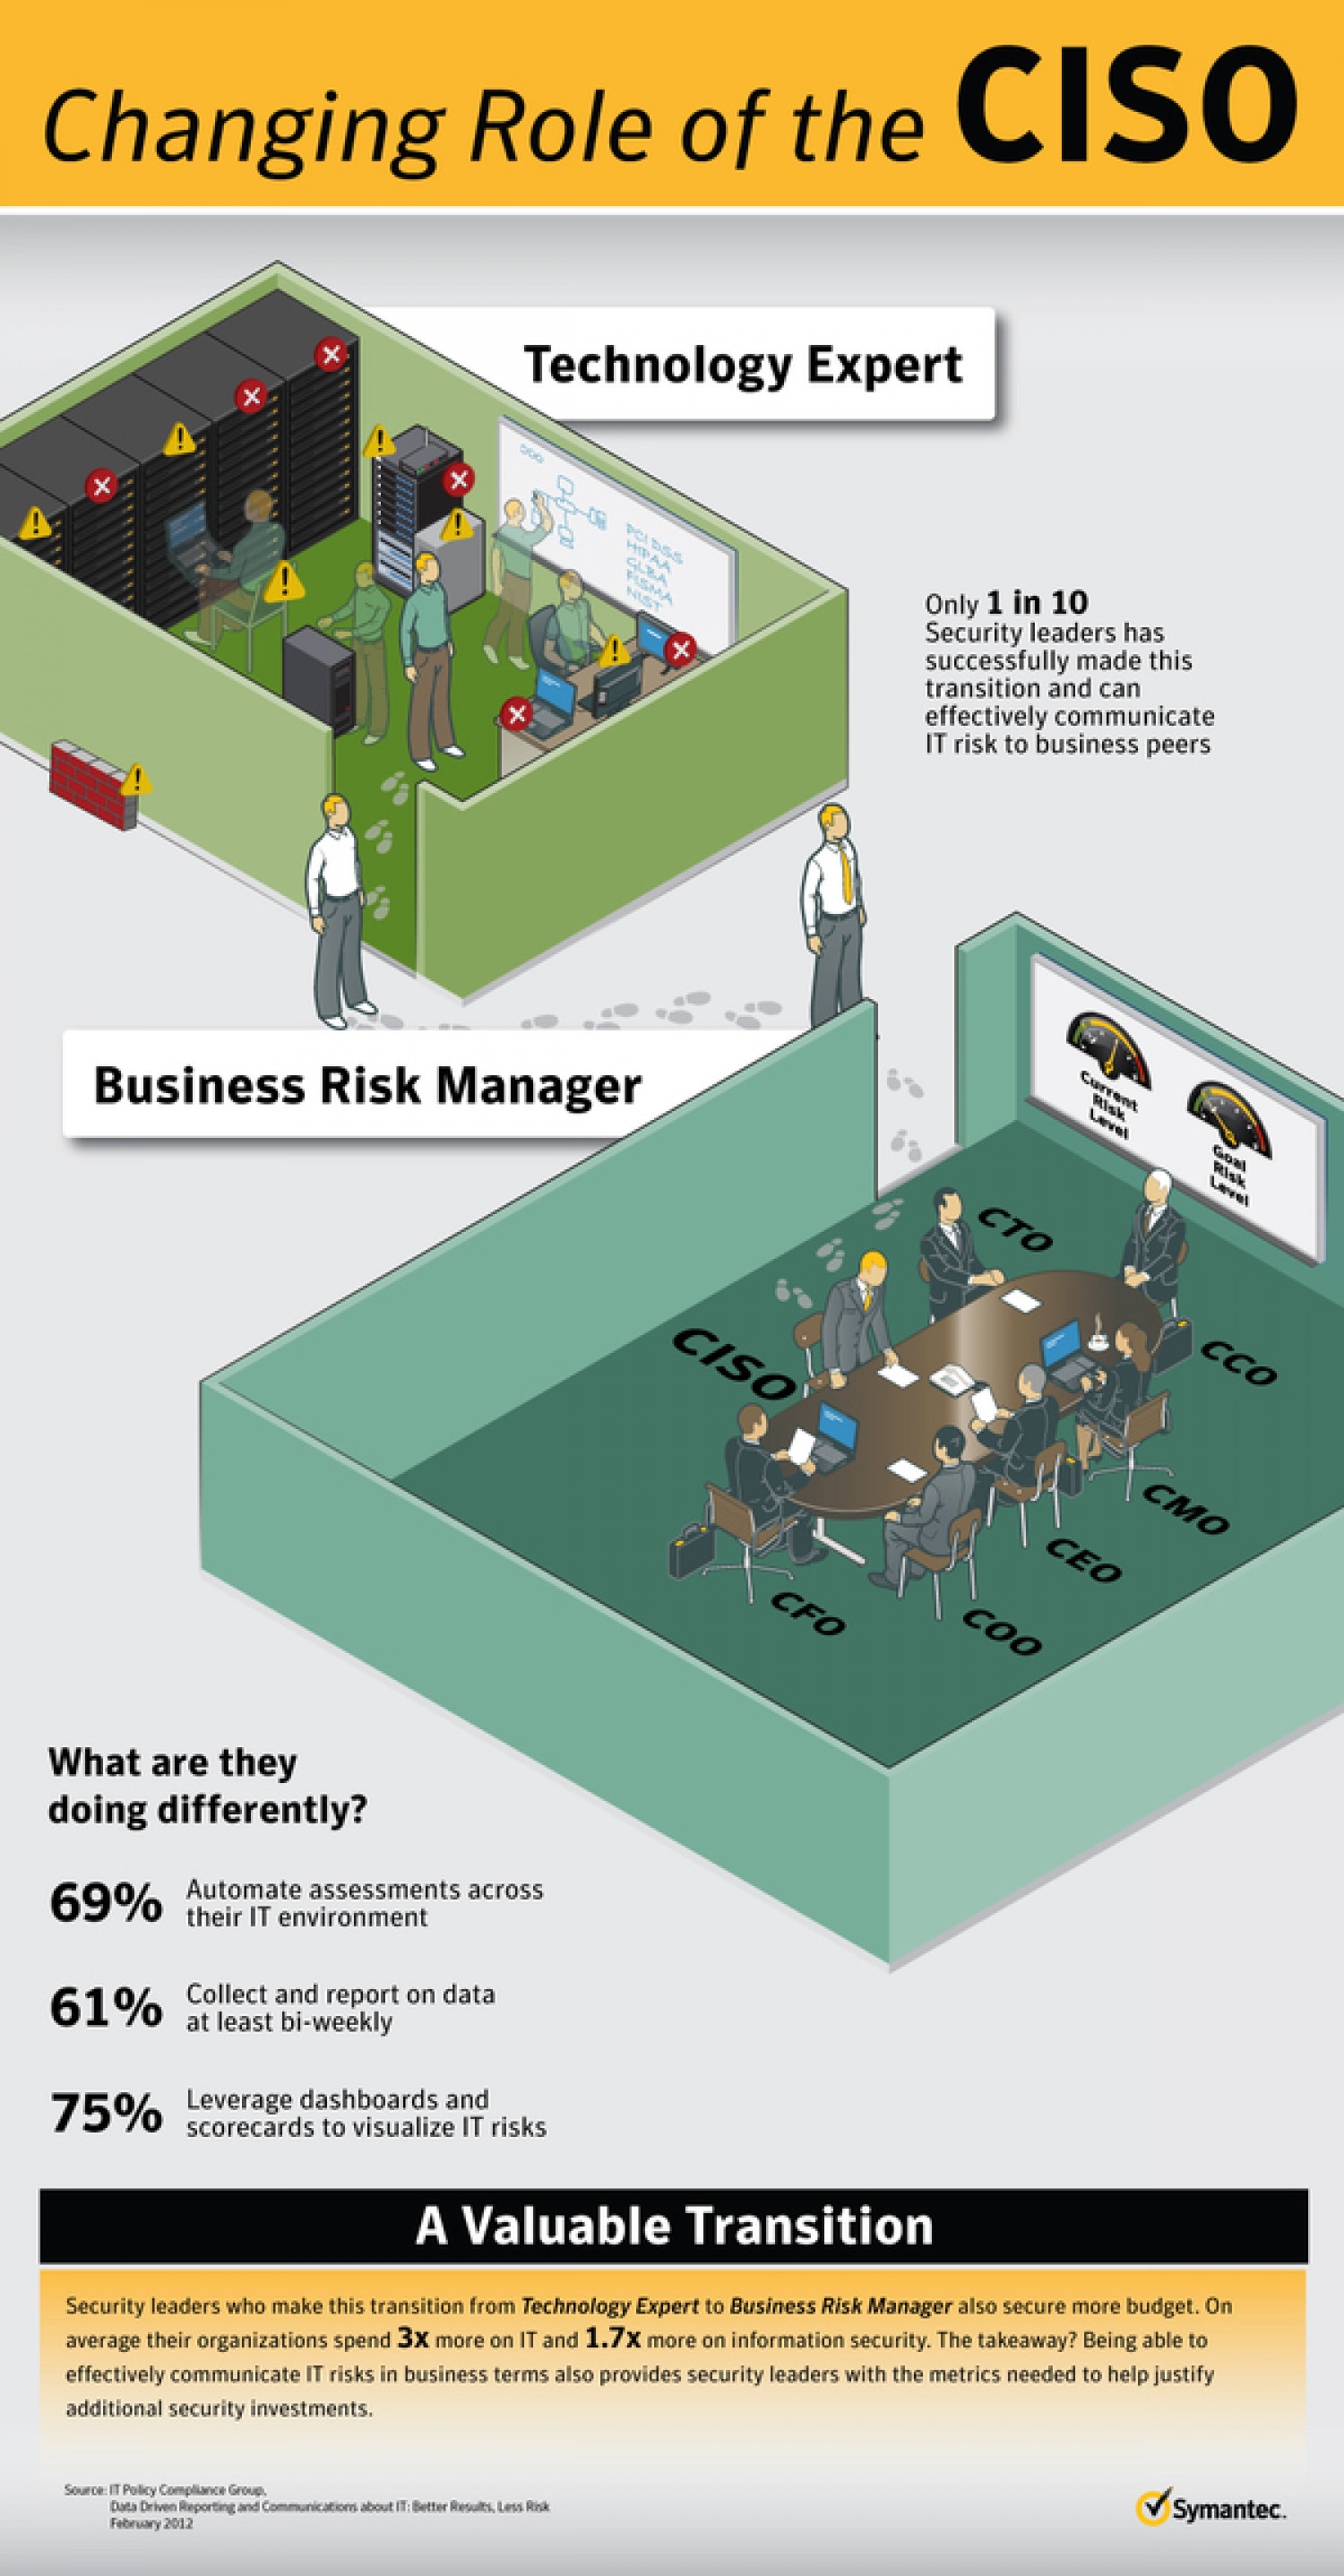 Changing Role of the CISO Infographic